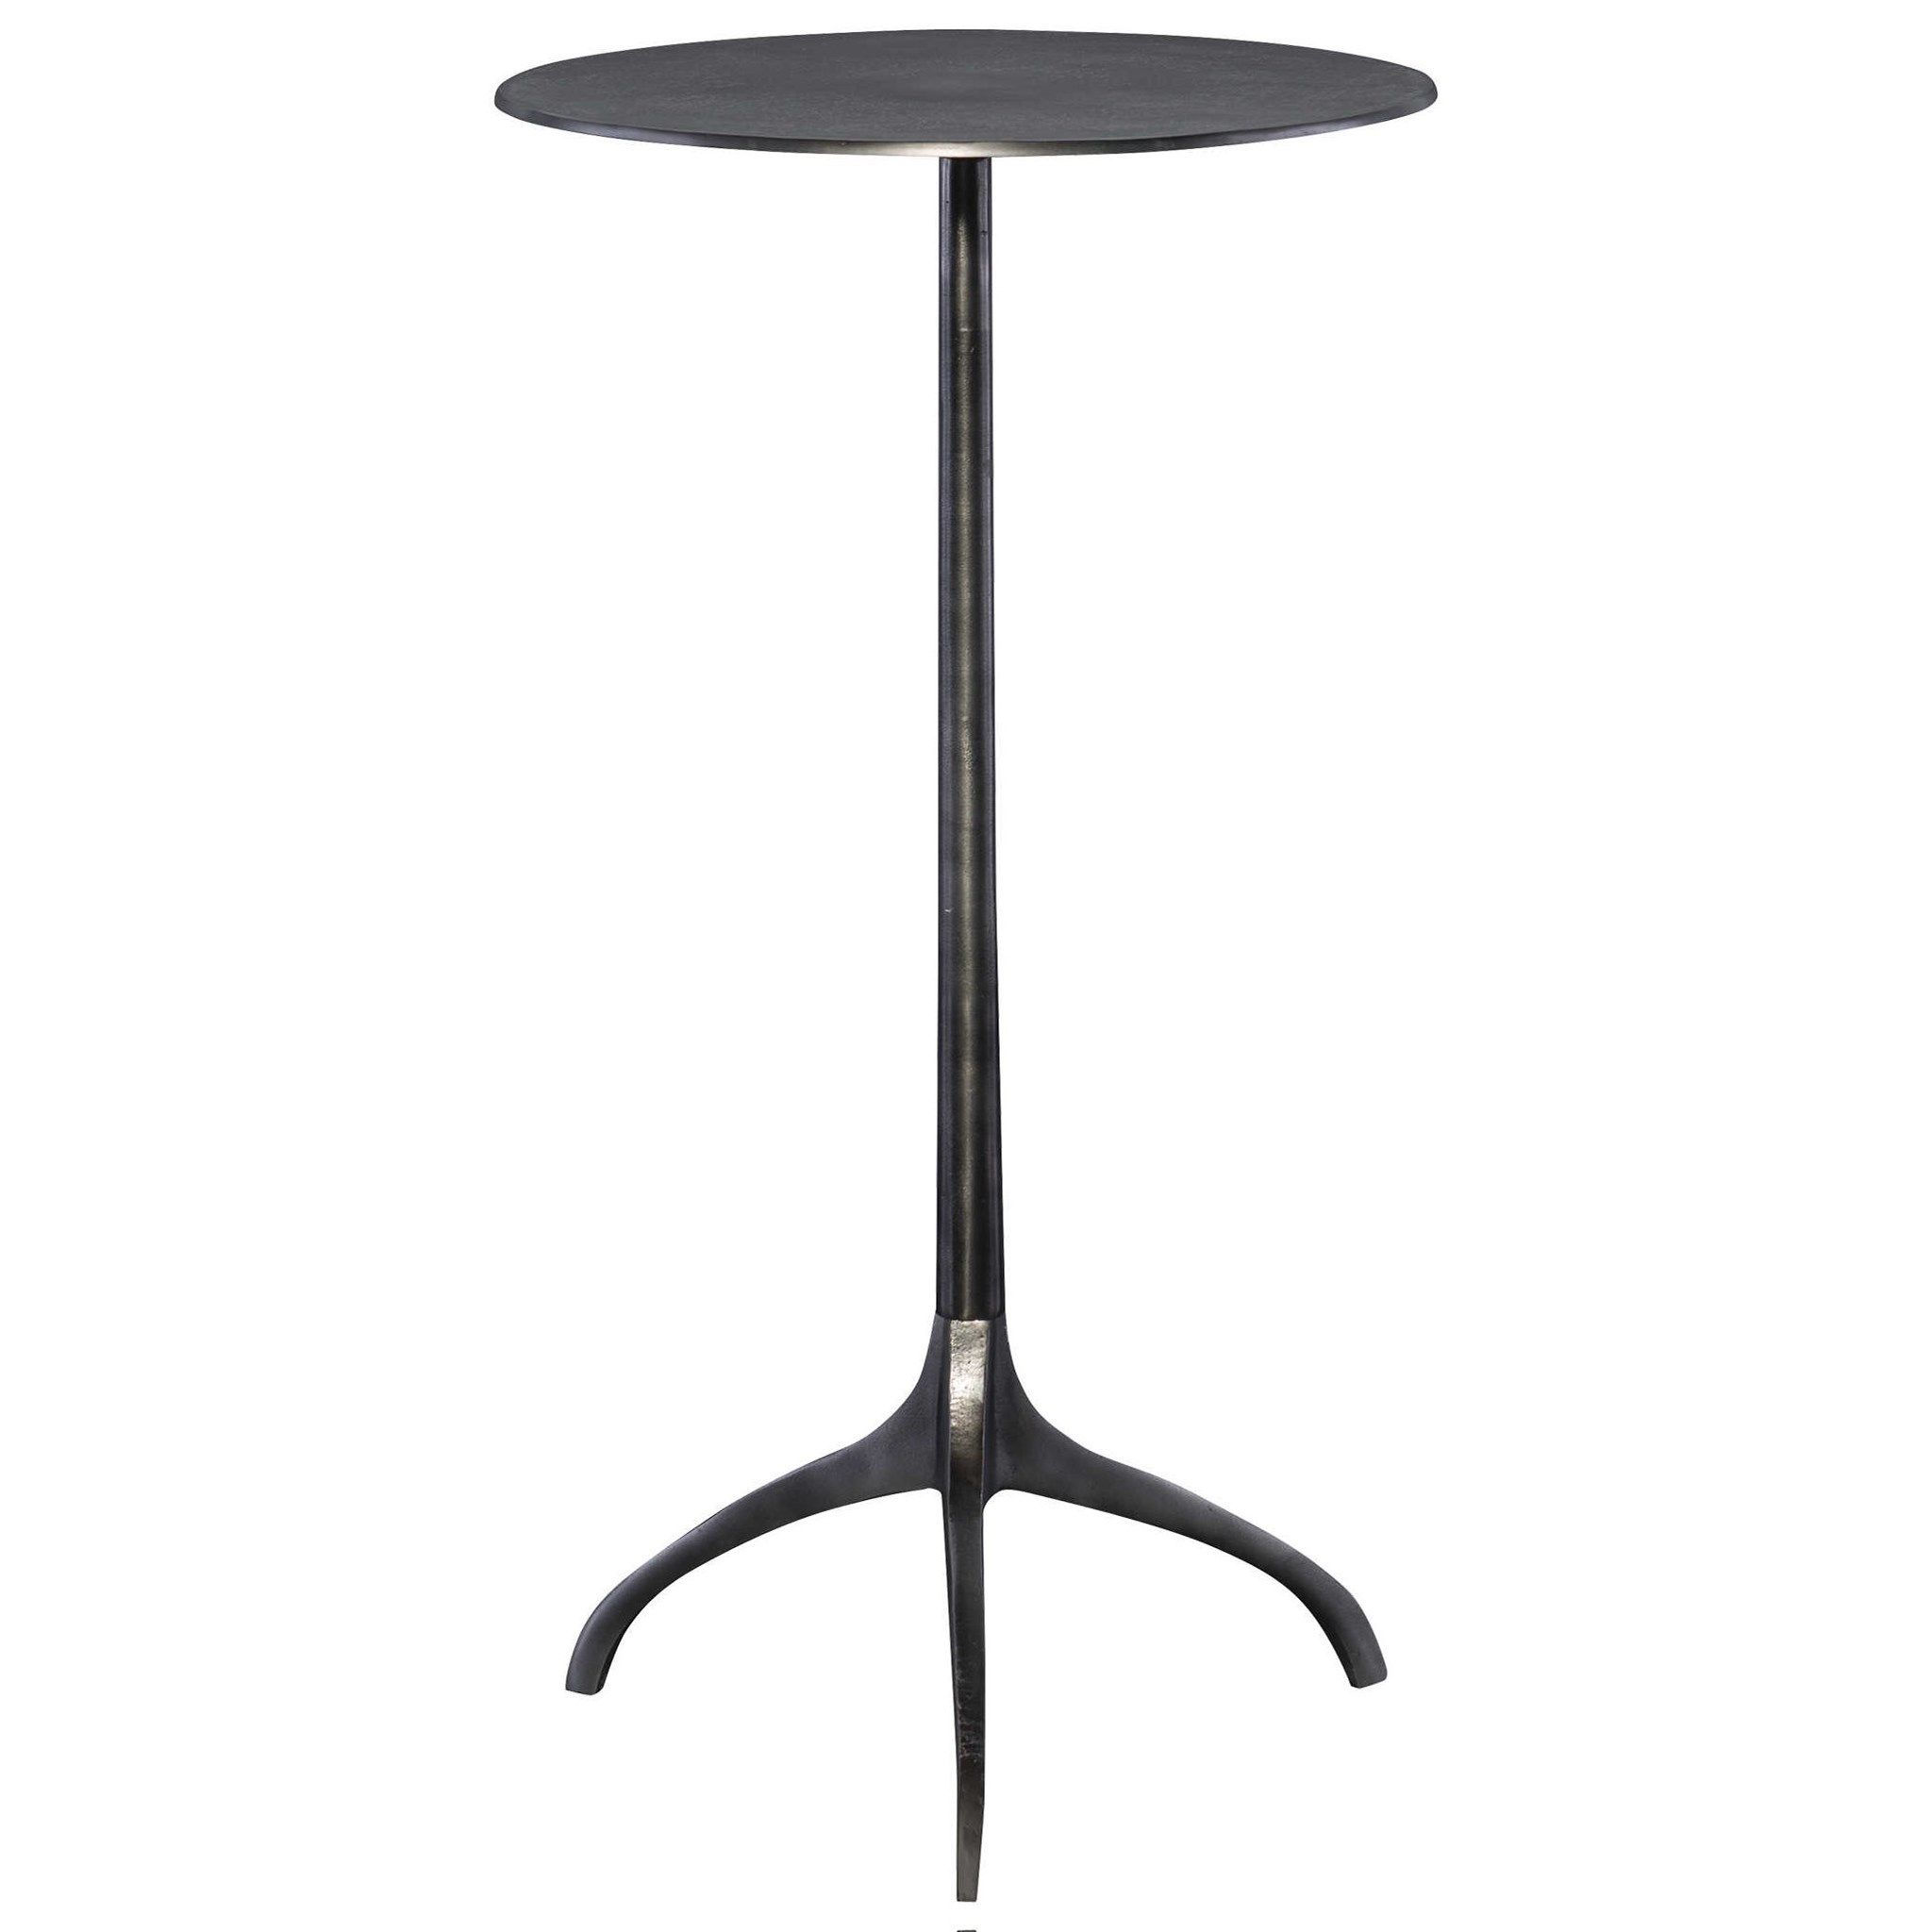 Accent Furniture - Occasional Tables Beacon Industrial Accent Table by Uttermost at Upper Room Home Furnishings